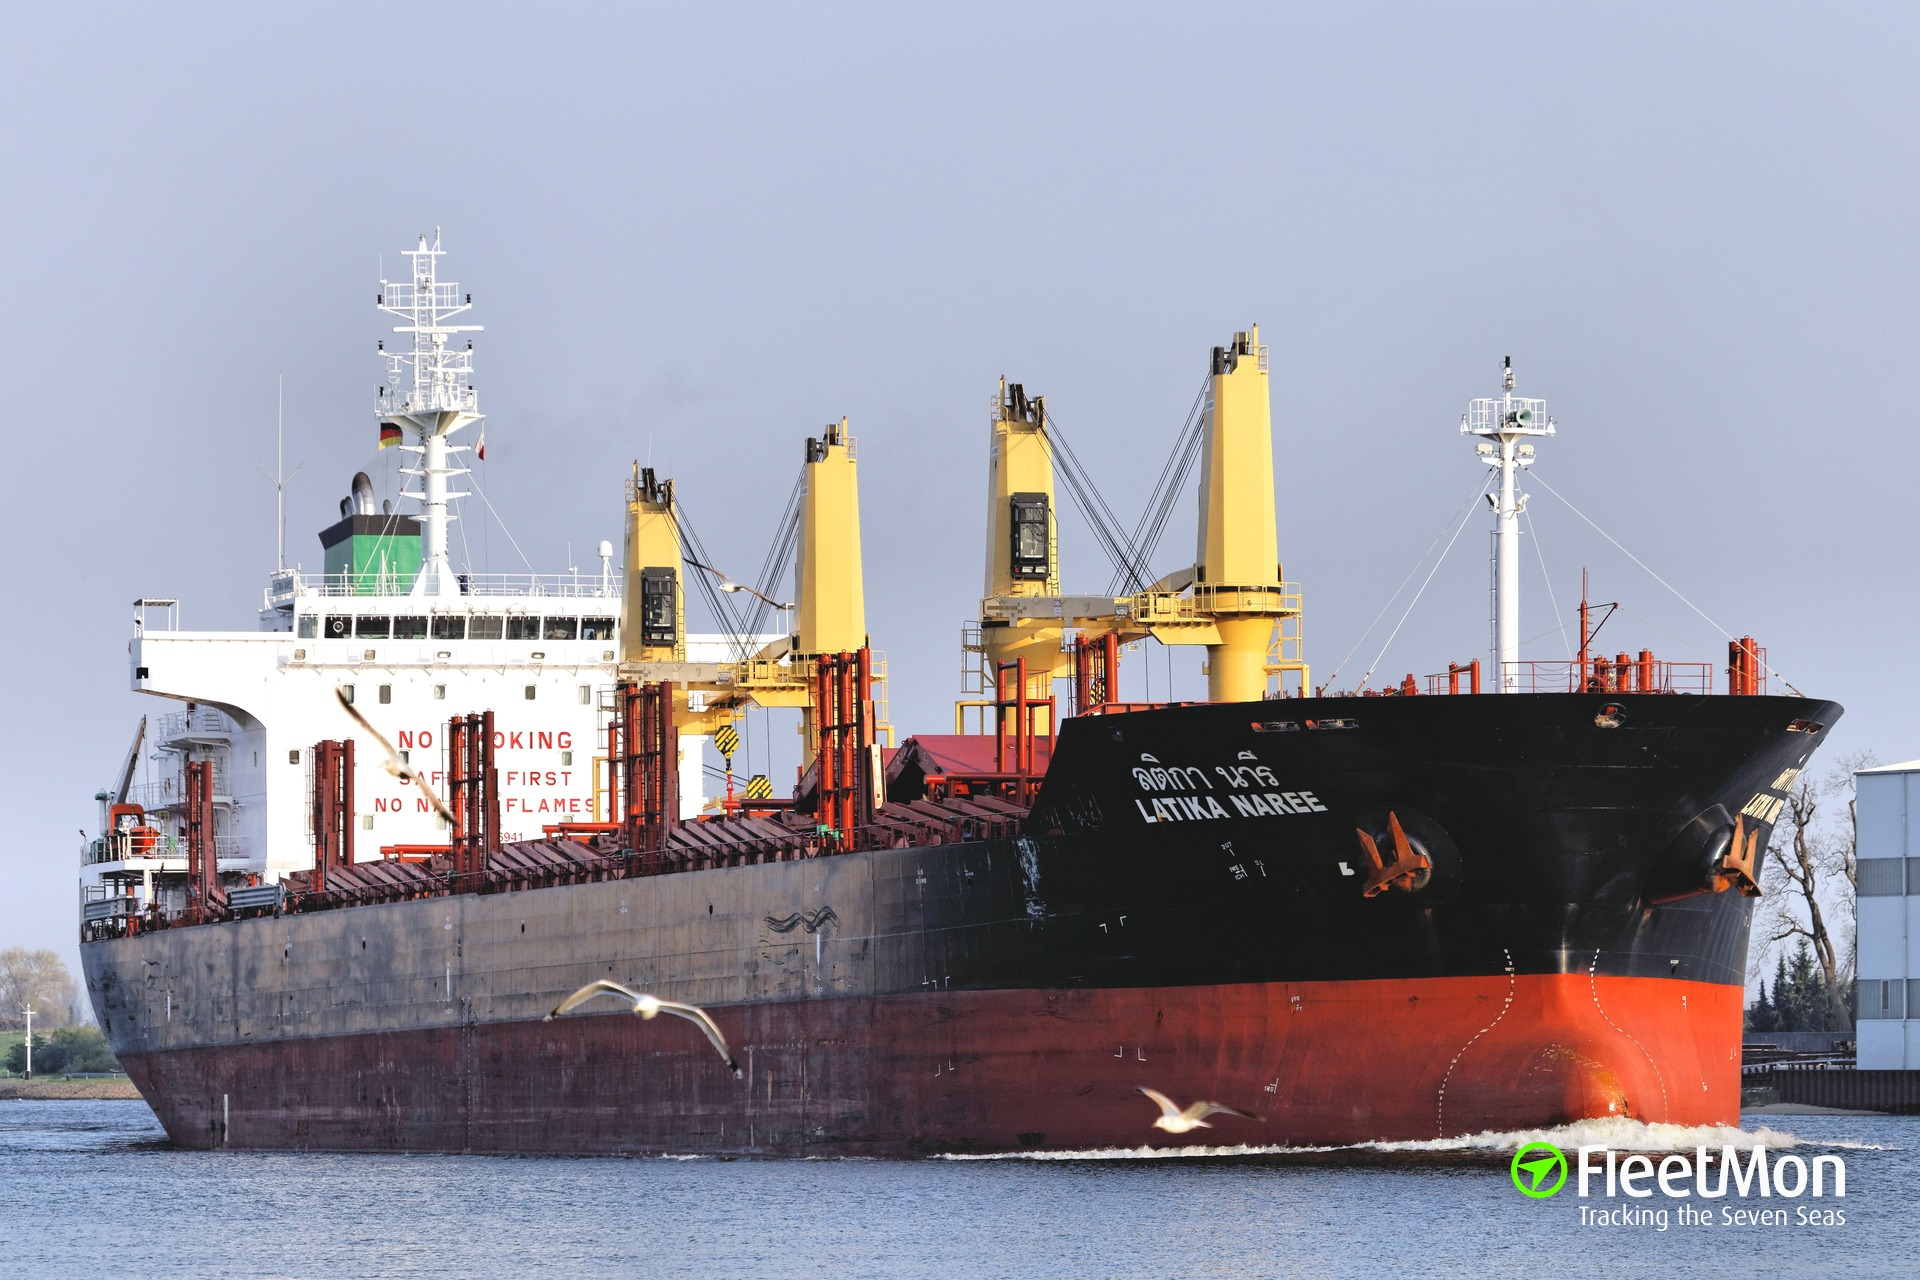 Two port workers died on board of Precious' bulk carrier